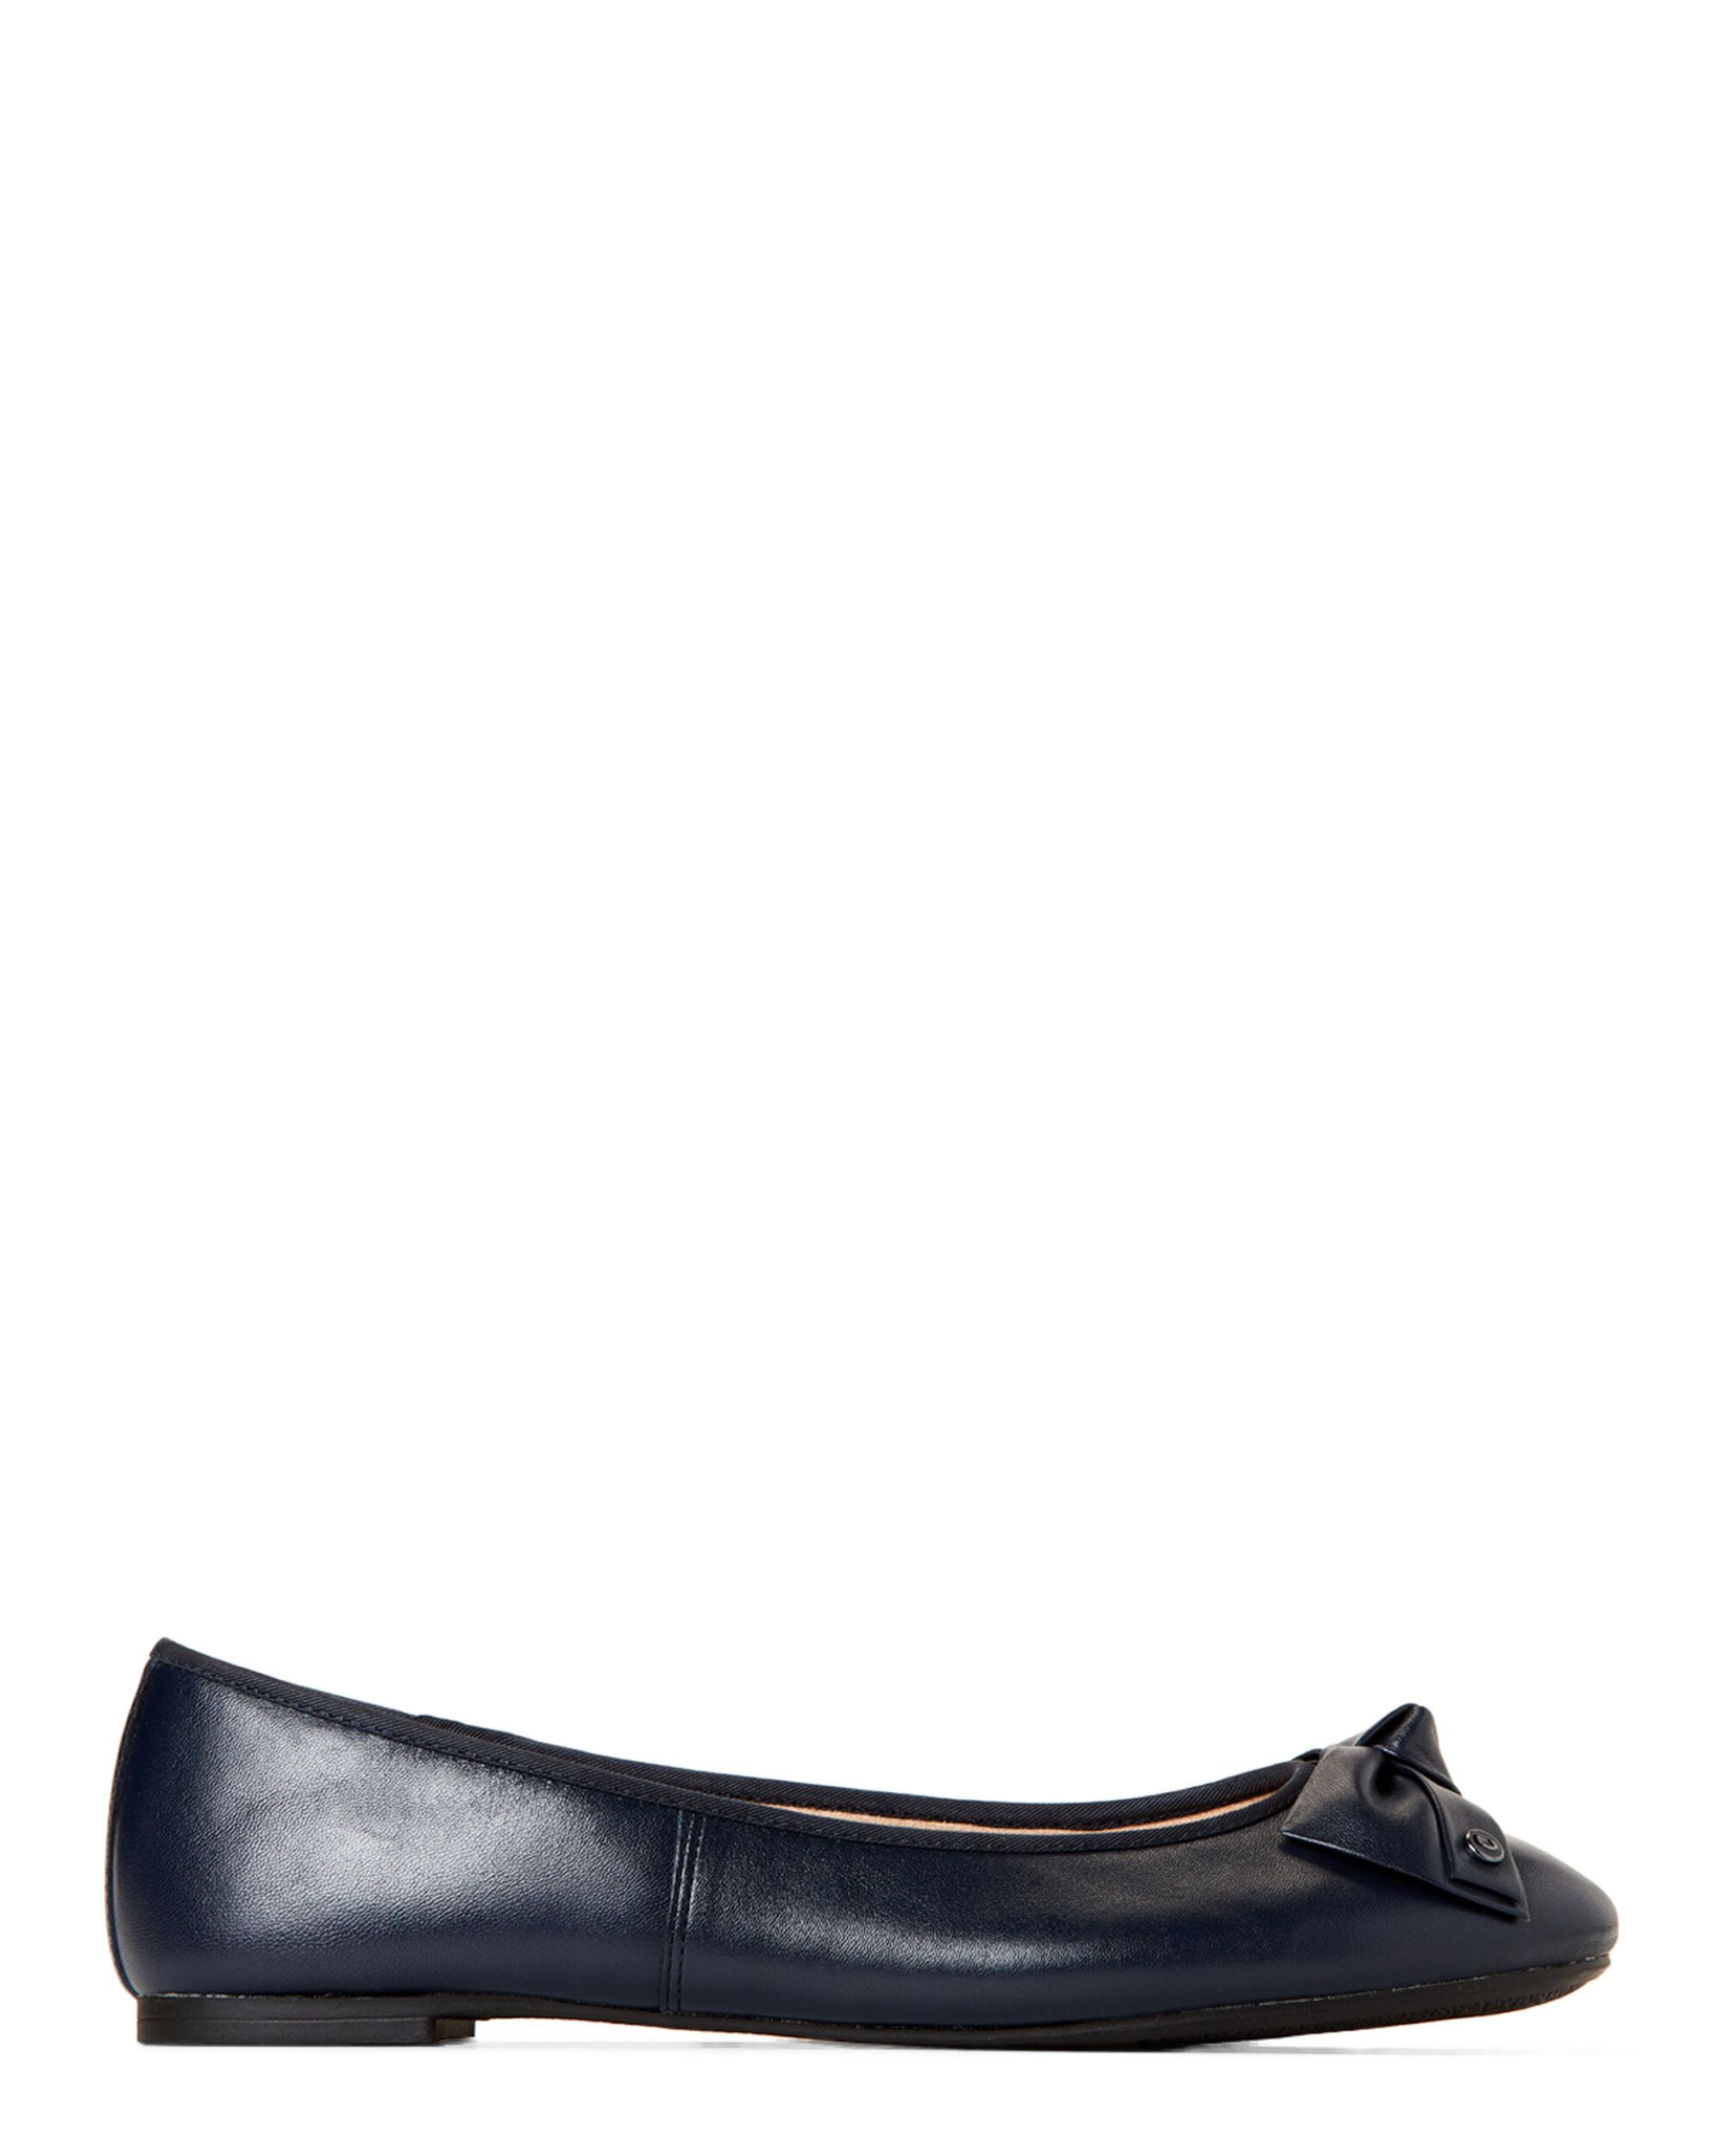 4b94ac1e4 Circus by Sam Edelman Navy Connie Bow Leather Flats in Blue - Lyst